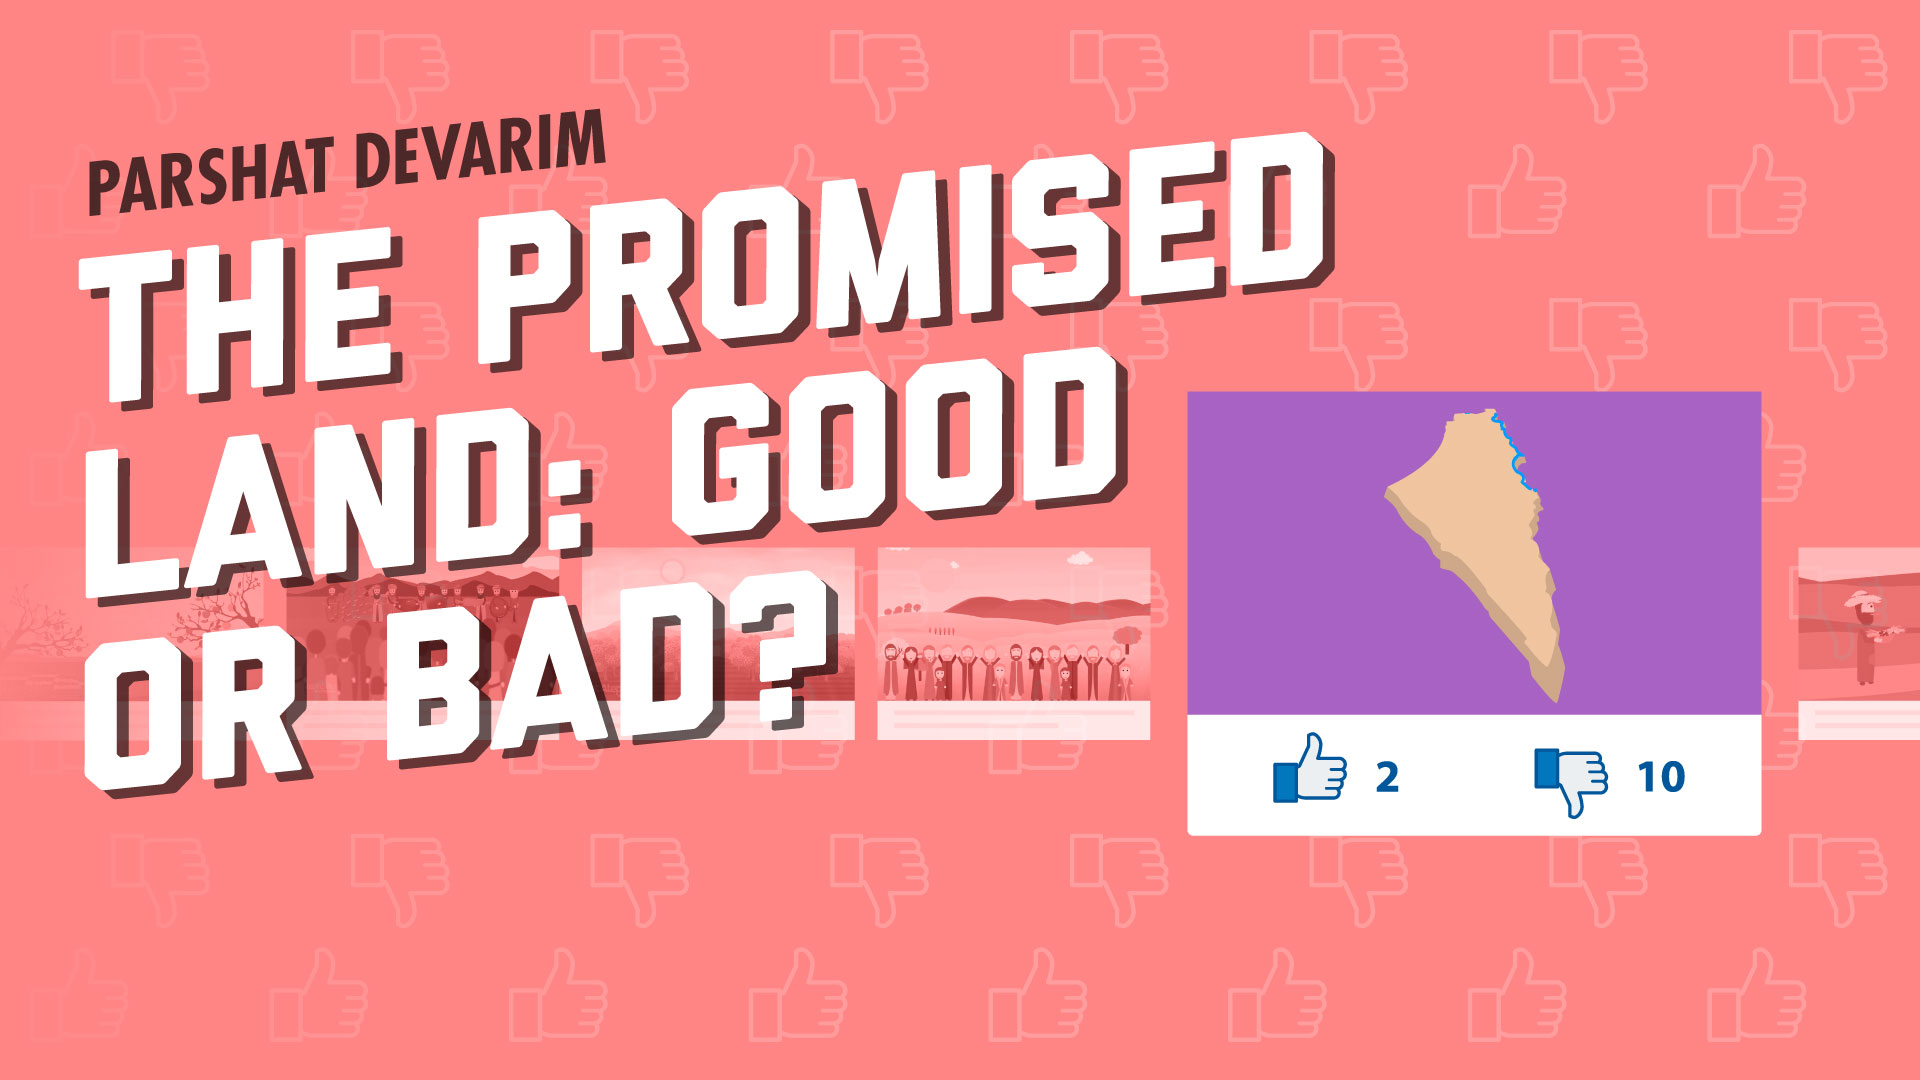 The Promised Land: Good Or Bad?